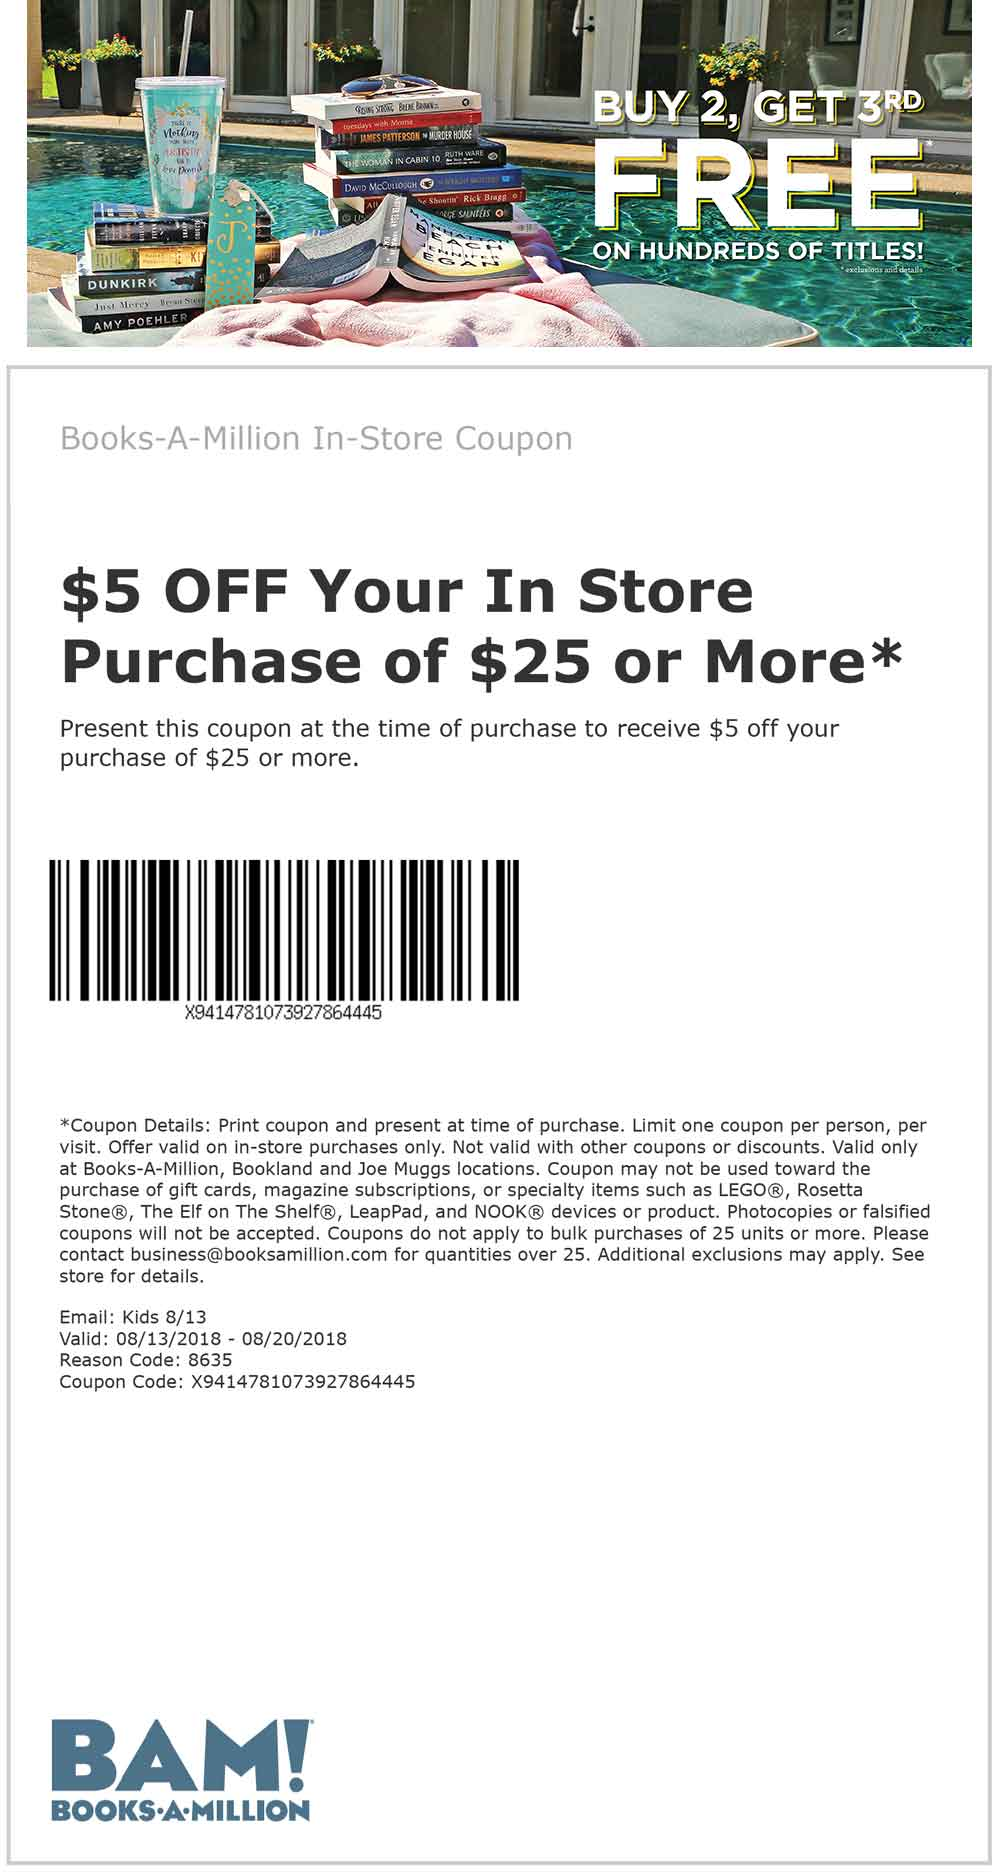 Books-A-Million.com Promo Coupon $5 off $25 at Books-A-Million, or $10 off $50 online via promo code BAM50